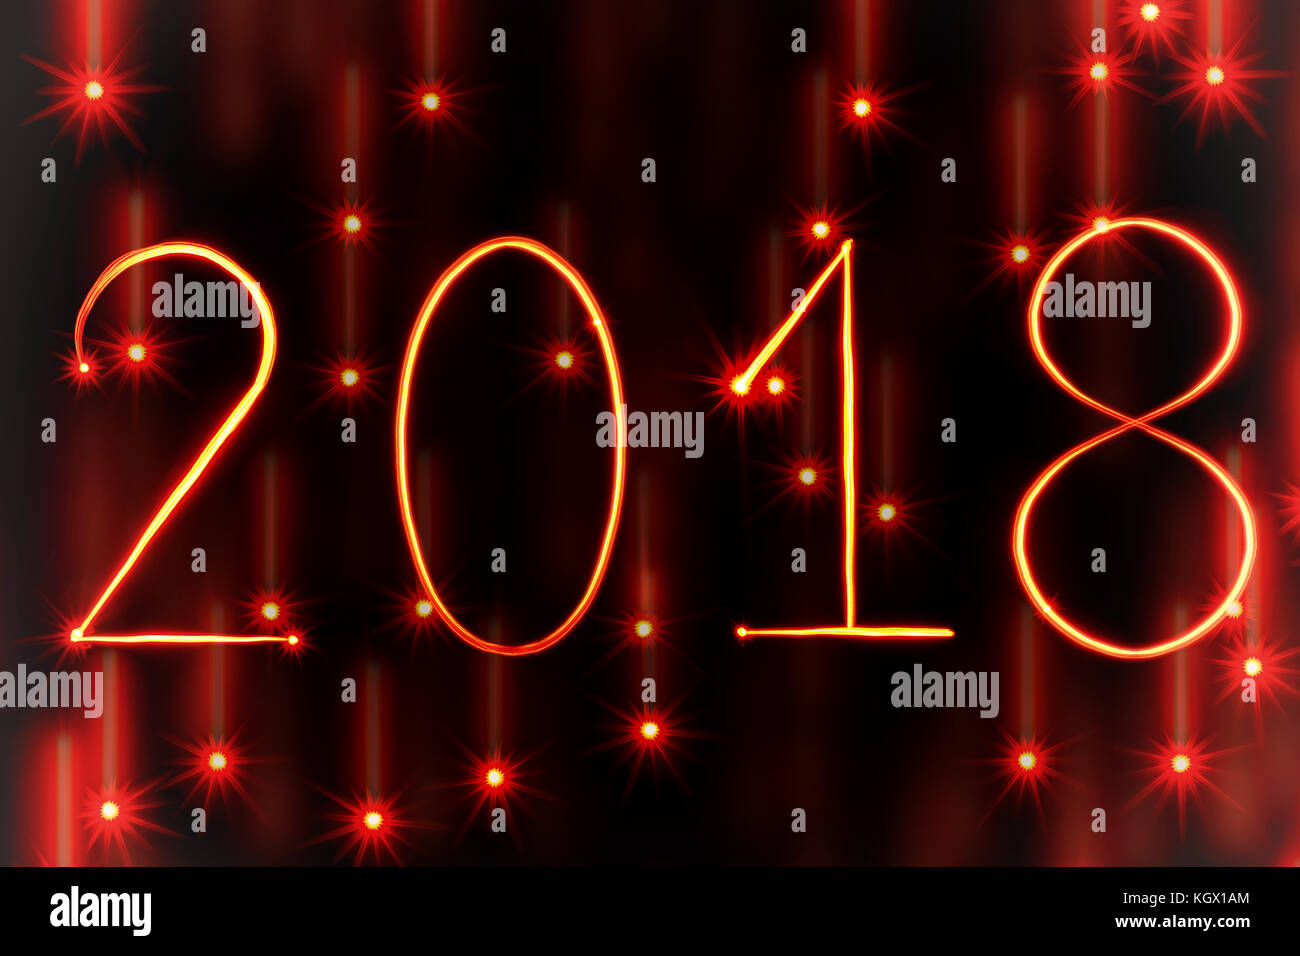 red light painting new year 2018 on red starry background - Stock Image